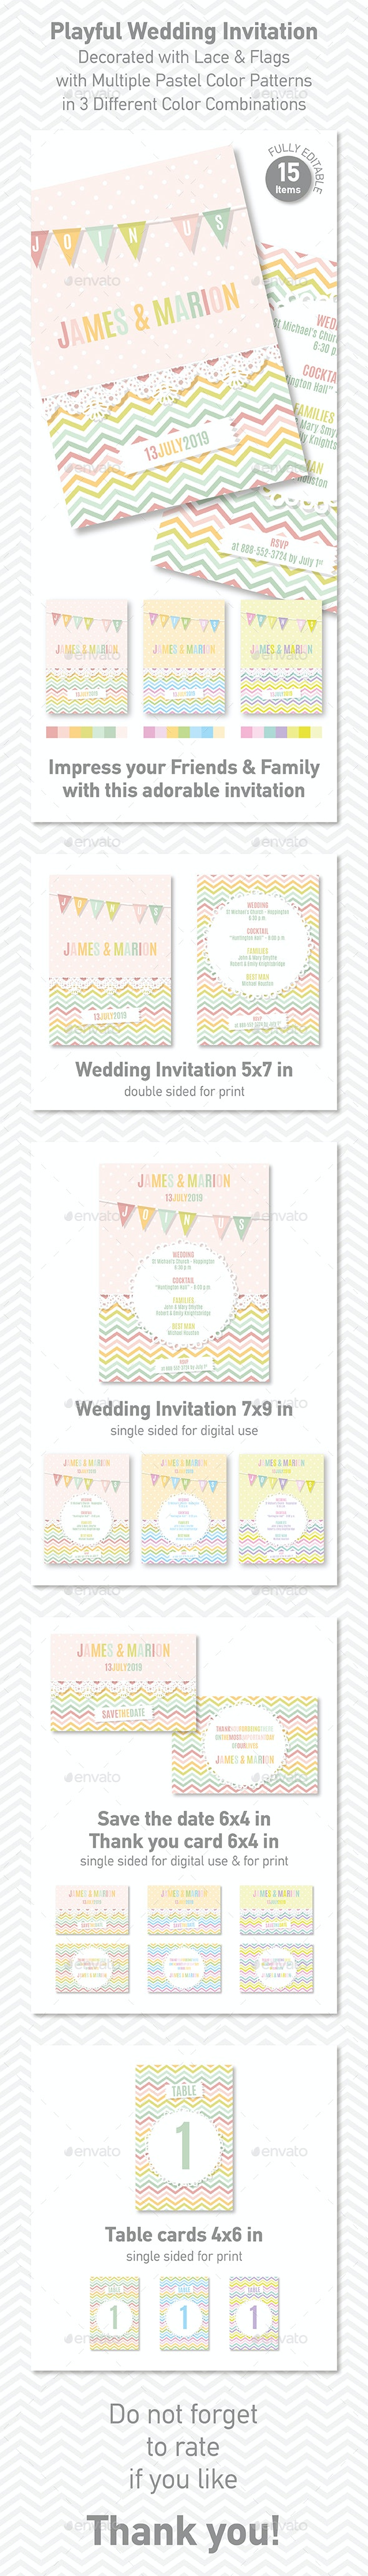 Playful Wedding Invitation Decorated with Lace & Flags - Wedding Greeting Cards